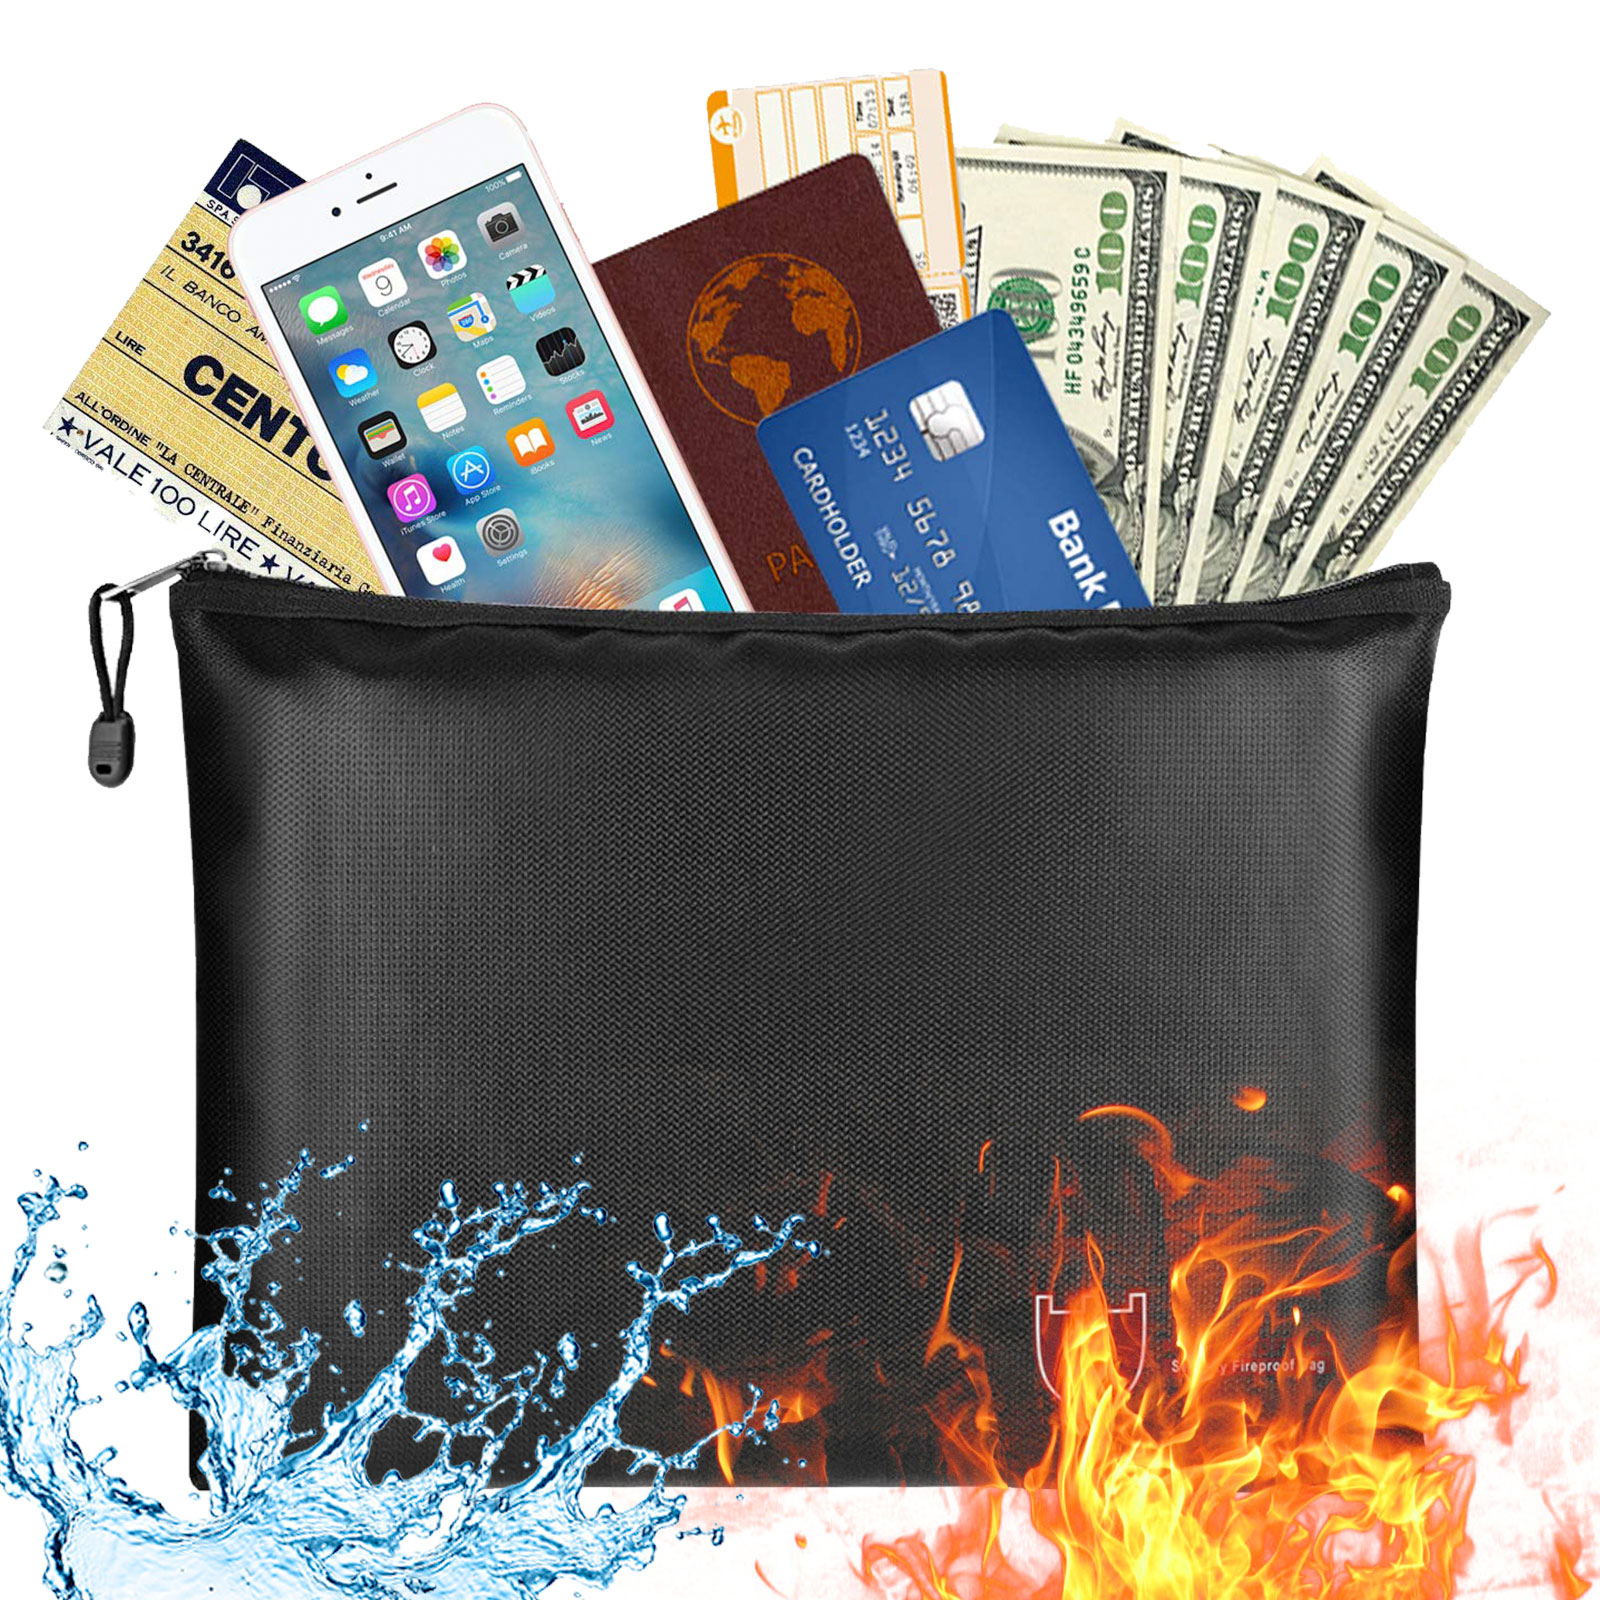 Fireproof Document Bags Fire Safe Document Holder